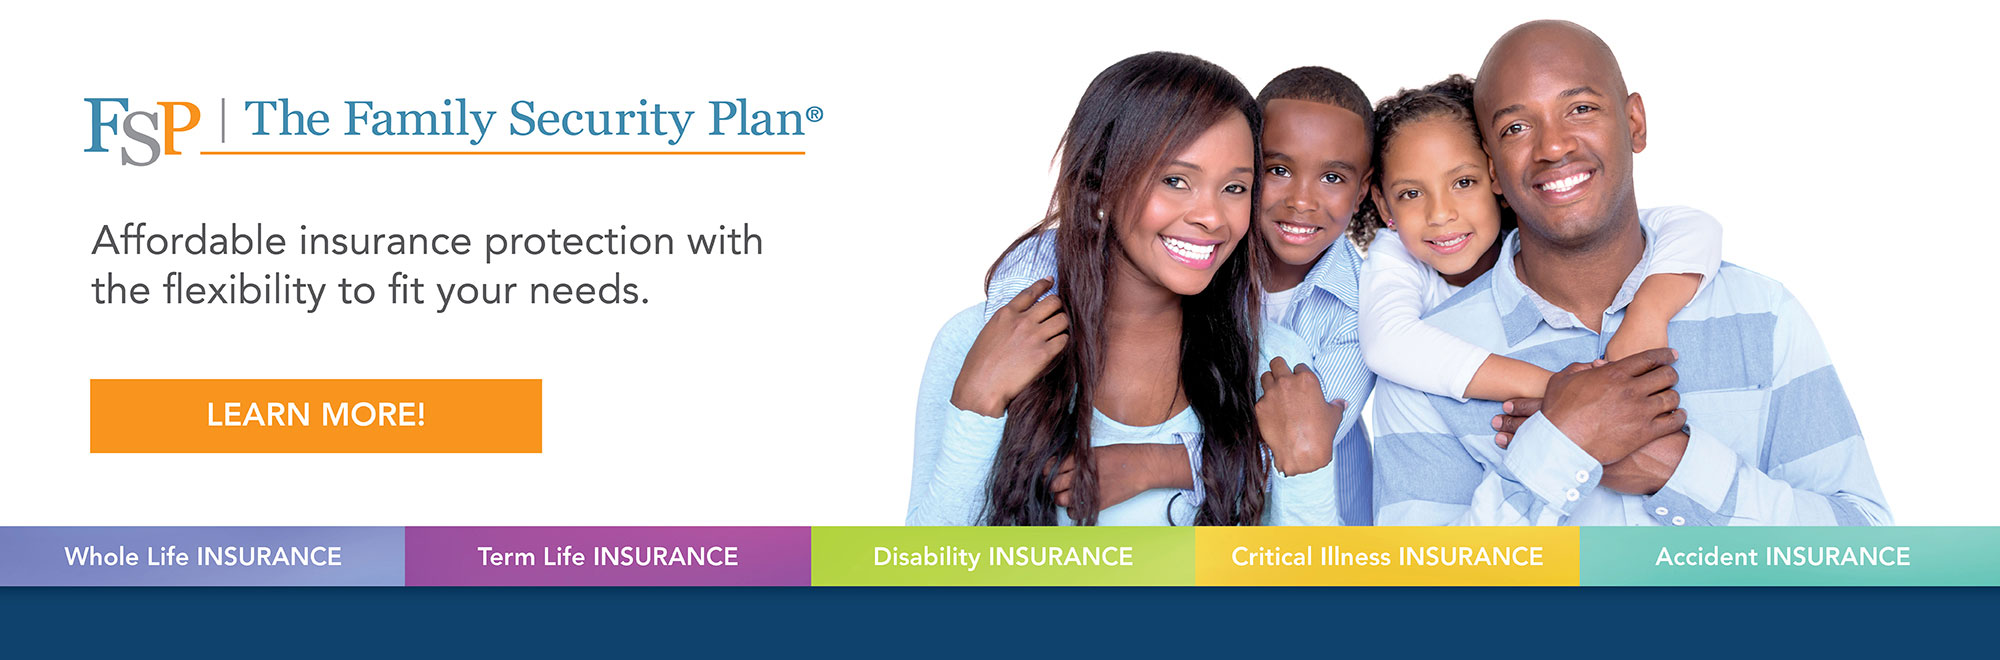 Affordable flexible Whole Life, Term Life, Disability, Critical Illness, and Accident Insurance from The Family Security Plan